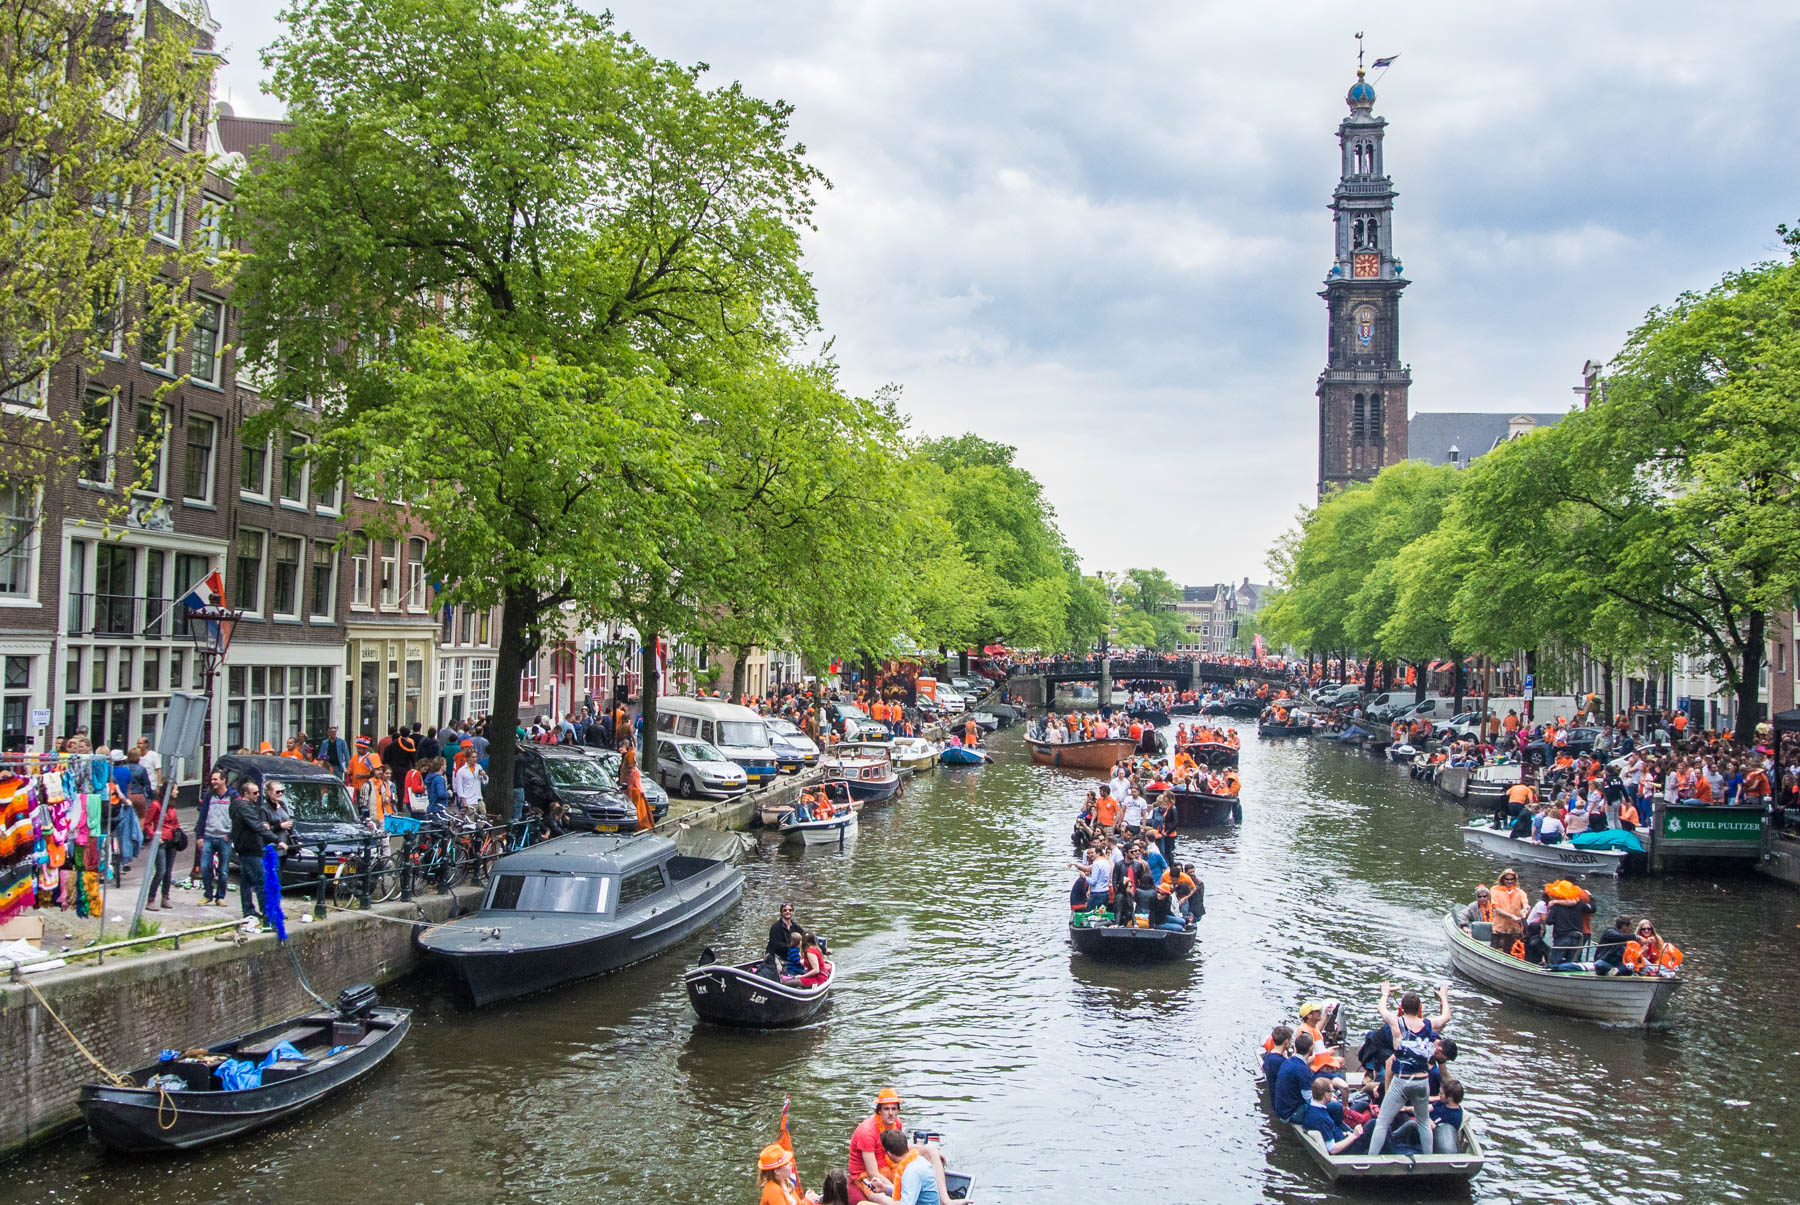 Boats in the canals in Amsterdam during King's Day